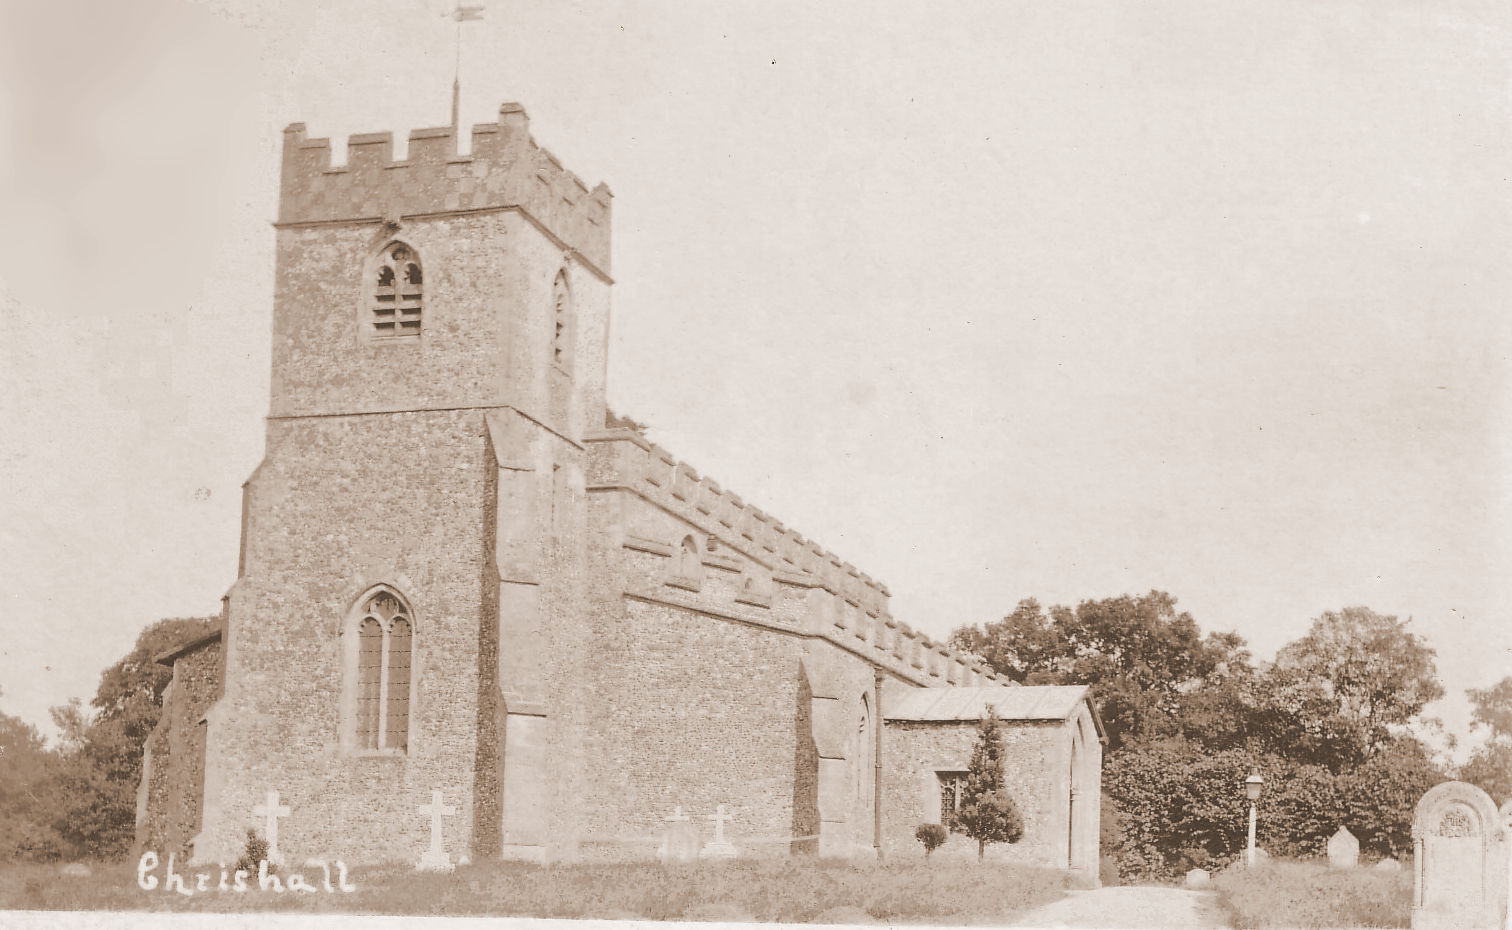 Chrishall church without the spire 1914